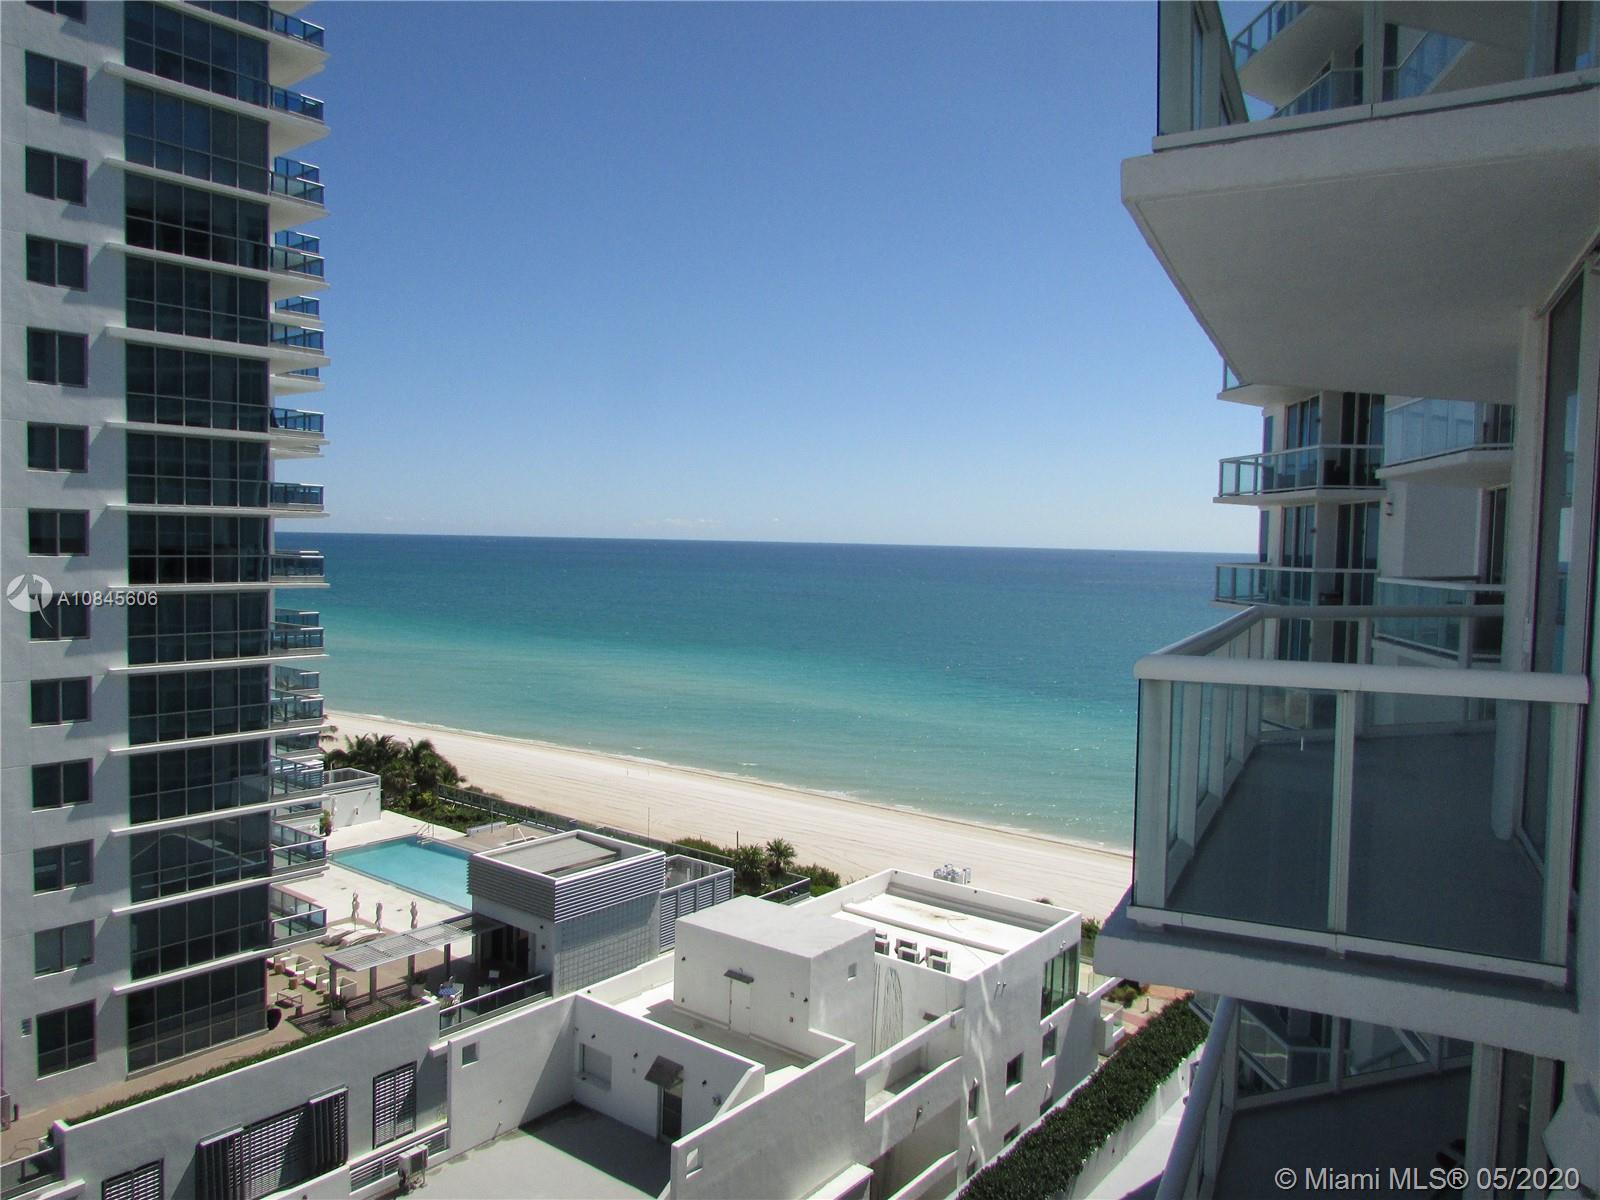 Photo of Bel Aire on the Ocean Apt 1209